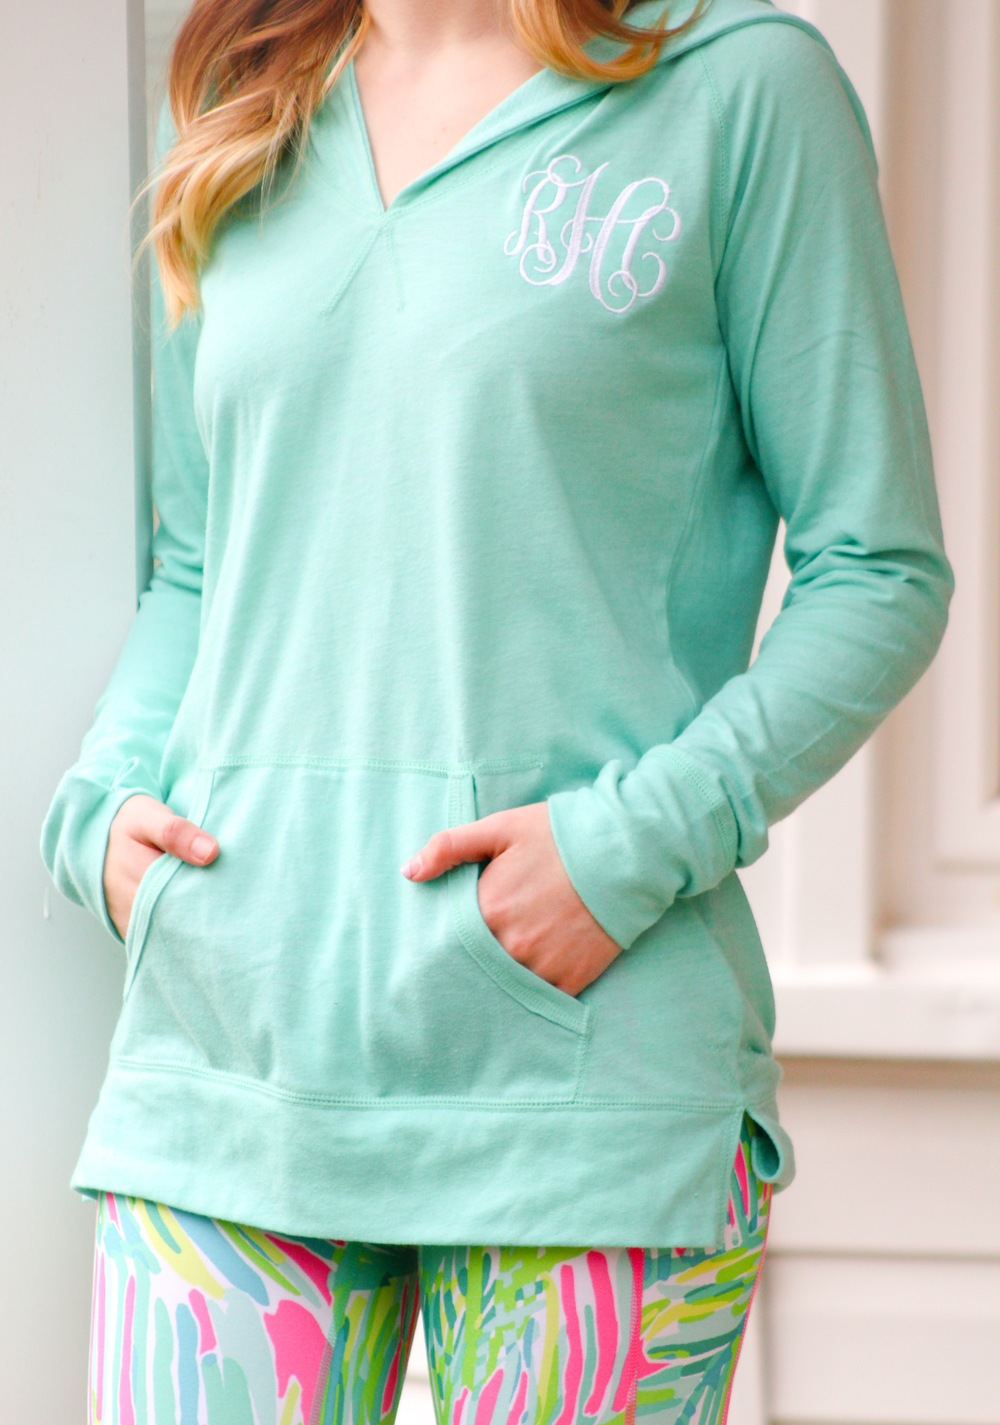 Say hello to your new favorite lounge piece! We've paired this lightweight hooded  sweatshirt  with some fun leggings, but it would look great in tons of different ways! We specifically love this sweatshirt for a comfy (and stylish) traveling outfit!